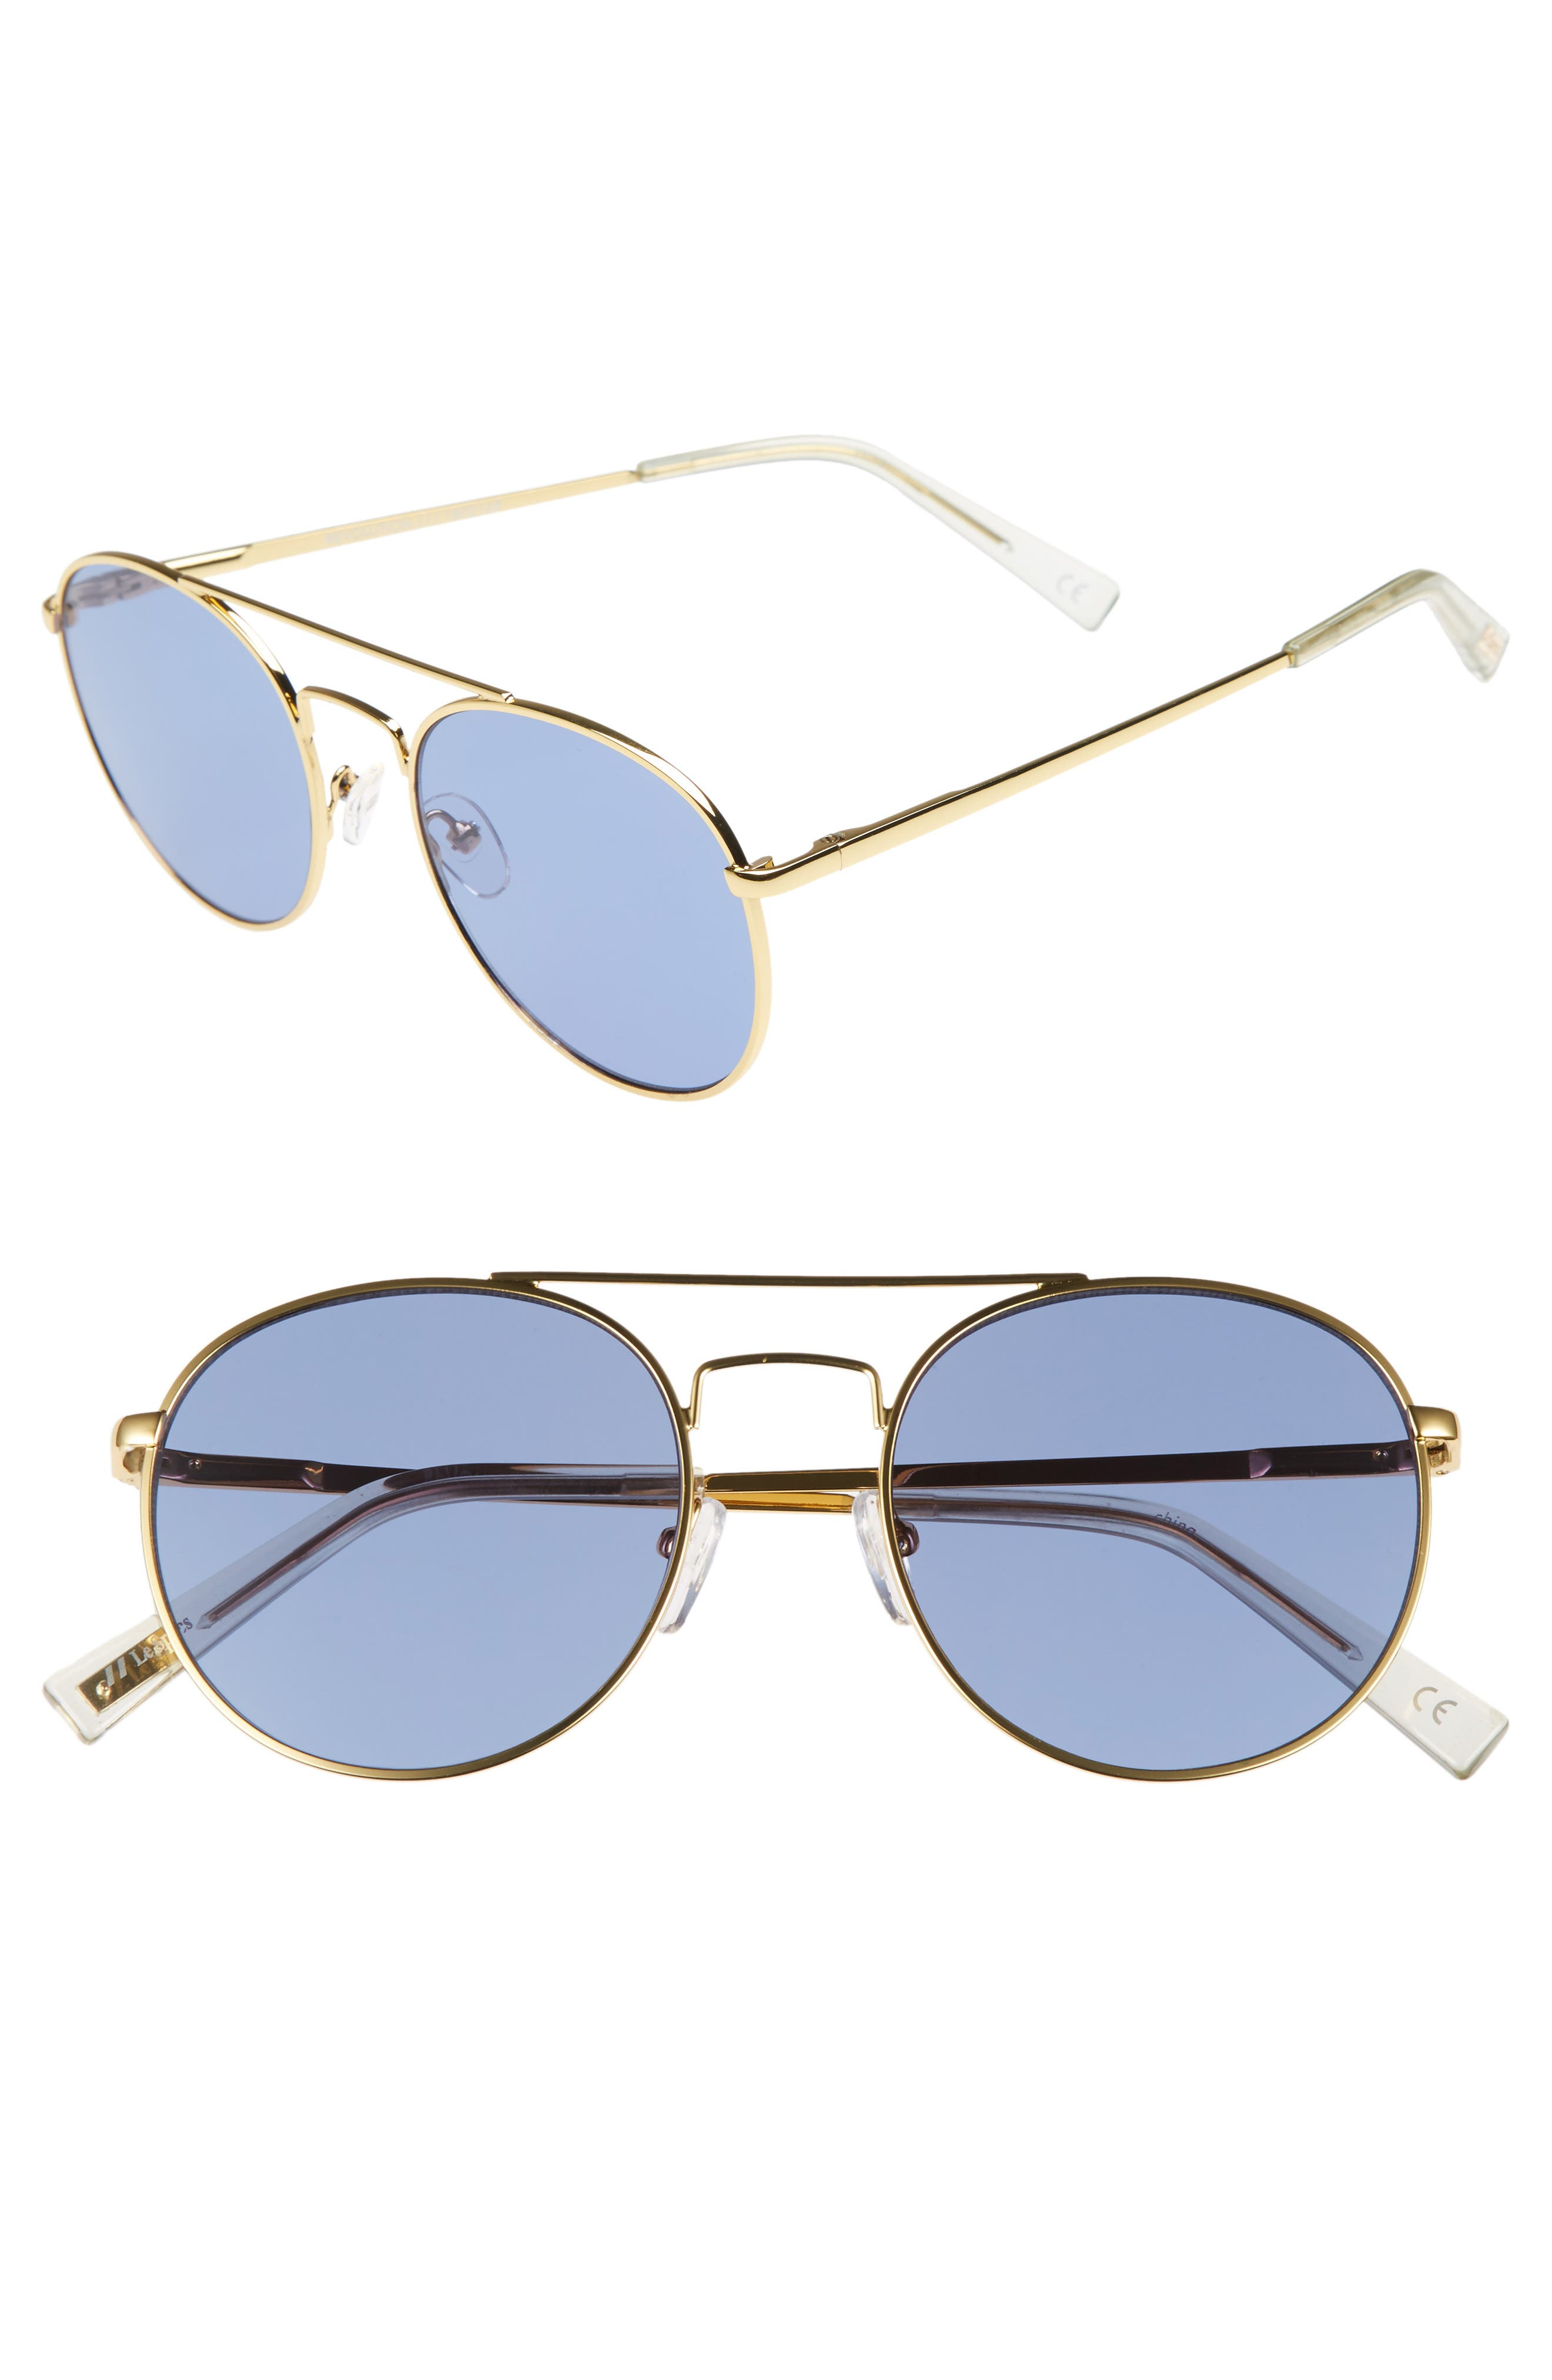 Revolution 53mm Aviator Sunglasses,                             Main thumbnail 1, color,                             Bright Gold